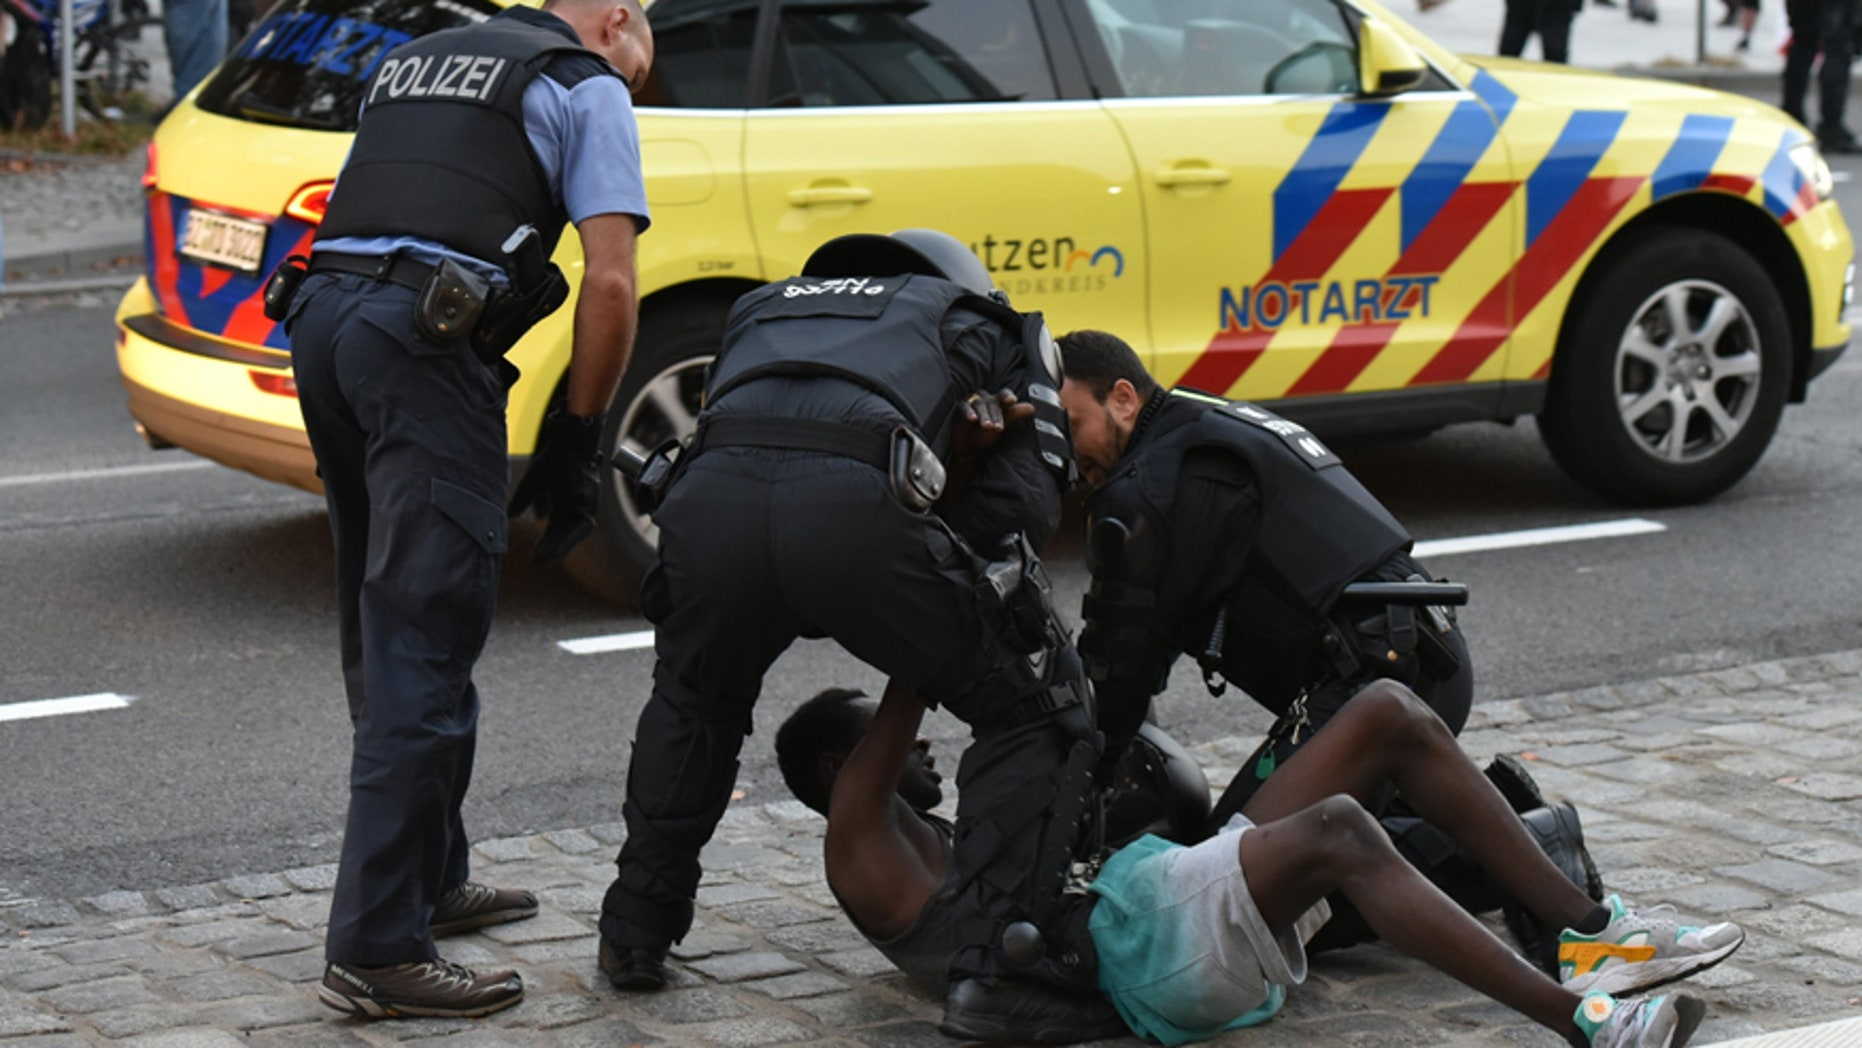 Sept. 10, 2016: Police officers take a man into custody during a gathering on a square at the Kornmarkt in Bautzen, Germany.